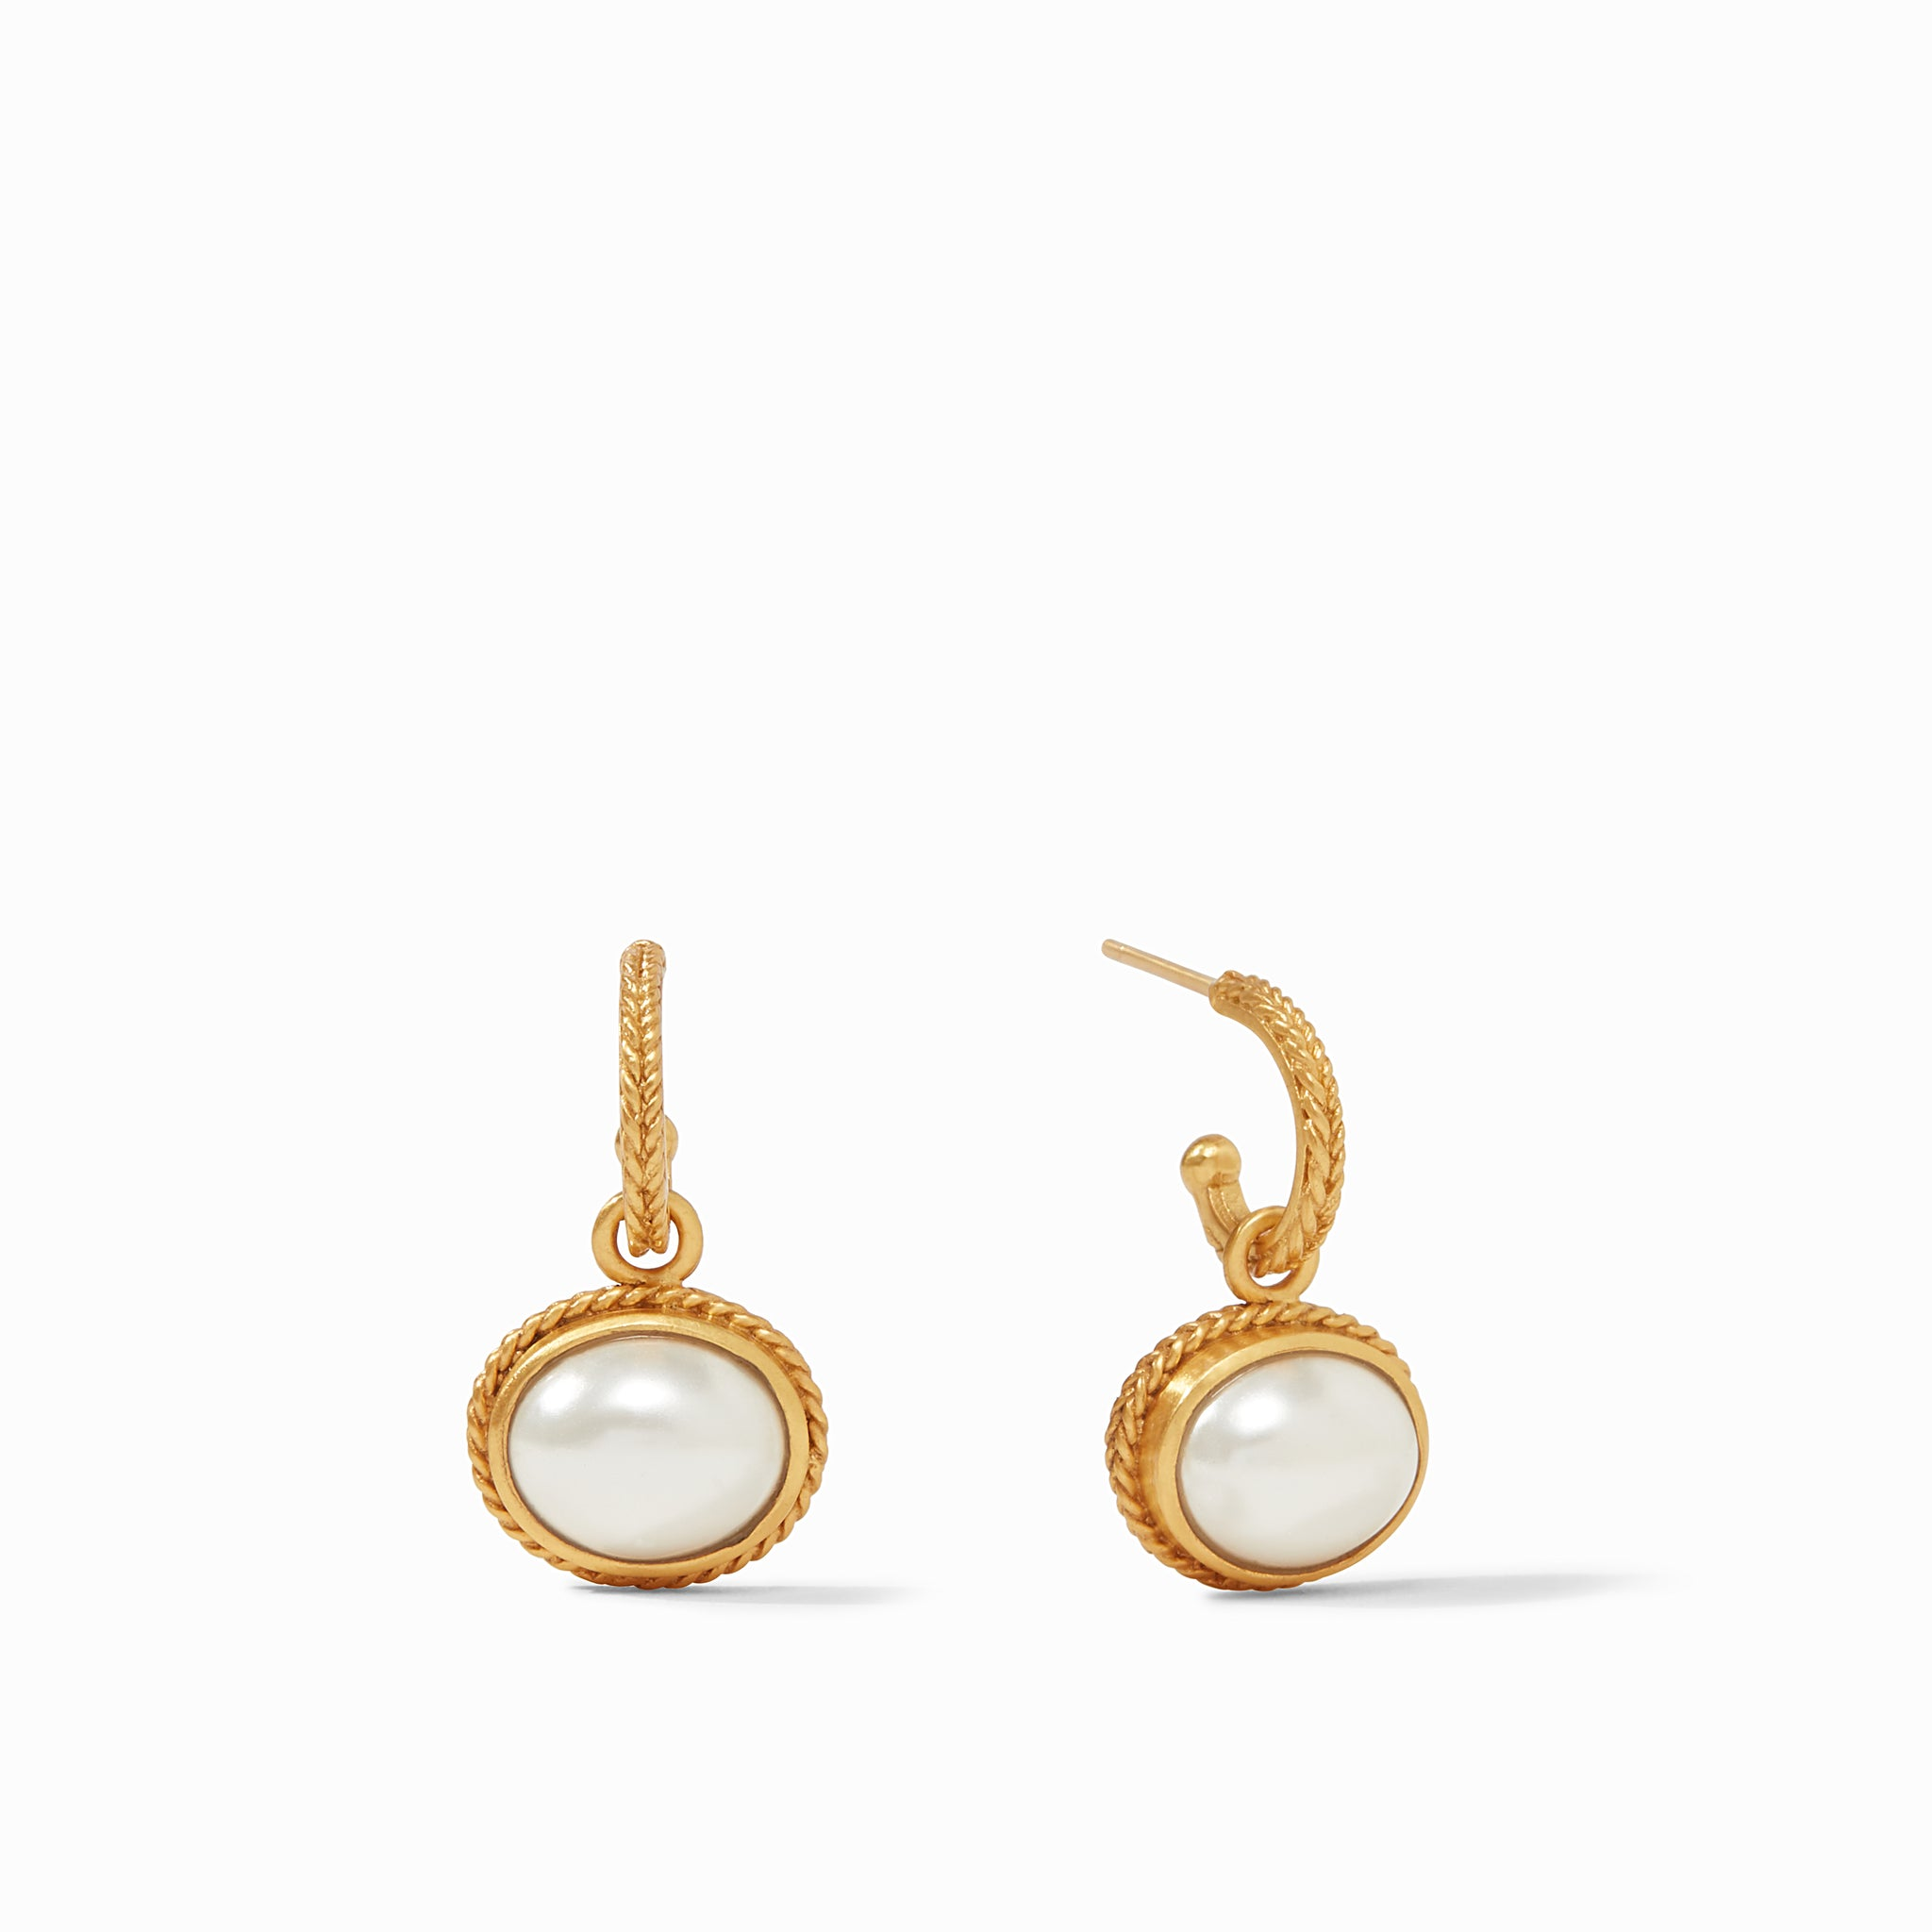 Pearl, classic earring 2020, valentines day gift guide